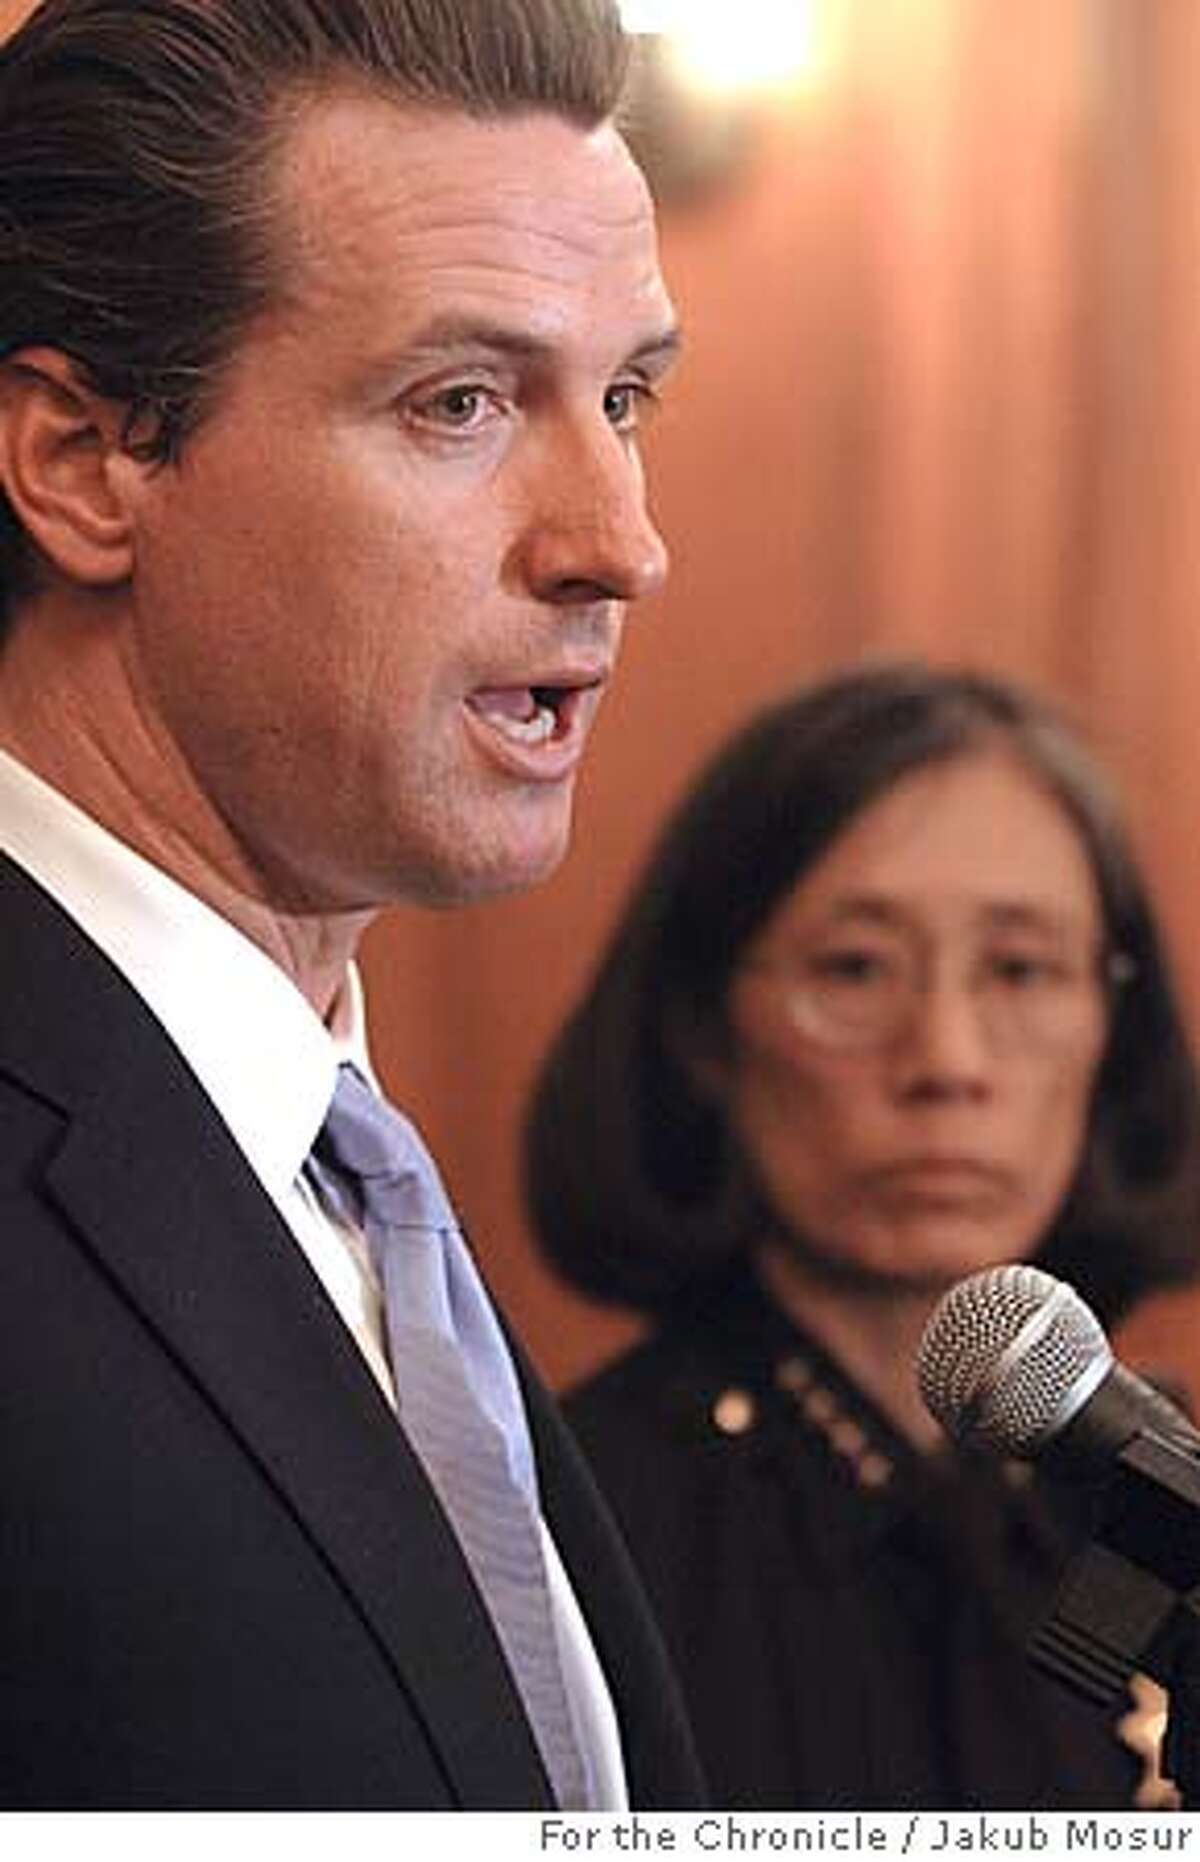 Mayor Gavin Newsom faces reporters with Chief of Police Heather Fong, right, Wednesday, Dec. 7, 2005, in San Francisco, where they announced that one police officer was suspended and more than a dozen others faced discipline after making videos parodying life on the force that used racist, sexist and homophobic stereotypes, according to Newsom and Fong. (AP Photo/The Chronicle, Jakub Mosur) ** MANDATORY CREDIT MAGS OUT **